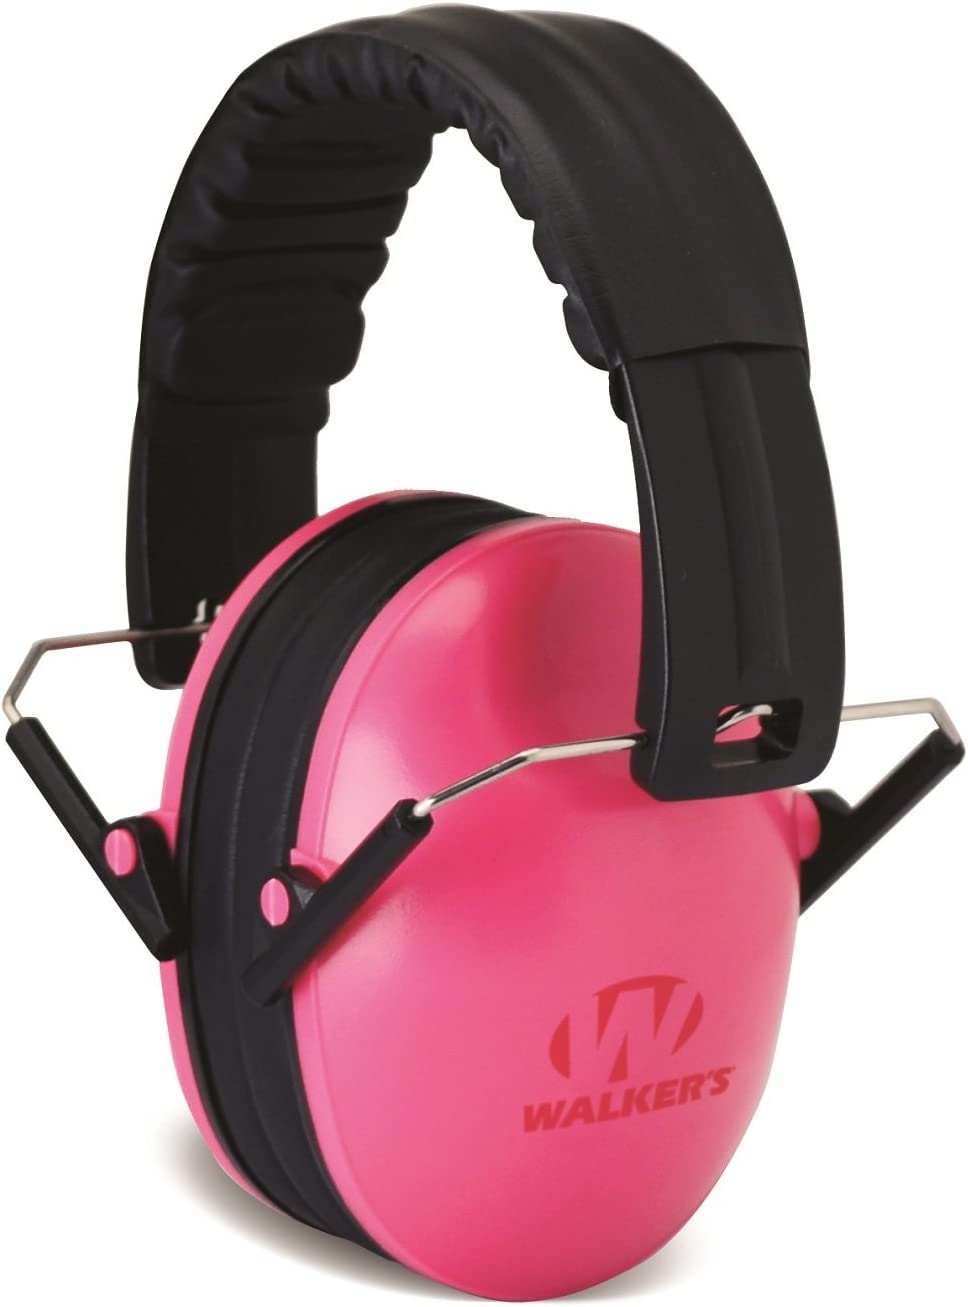 Walker's Game Ear Children's Passive Folding Ear Muff